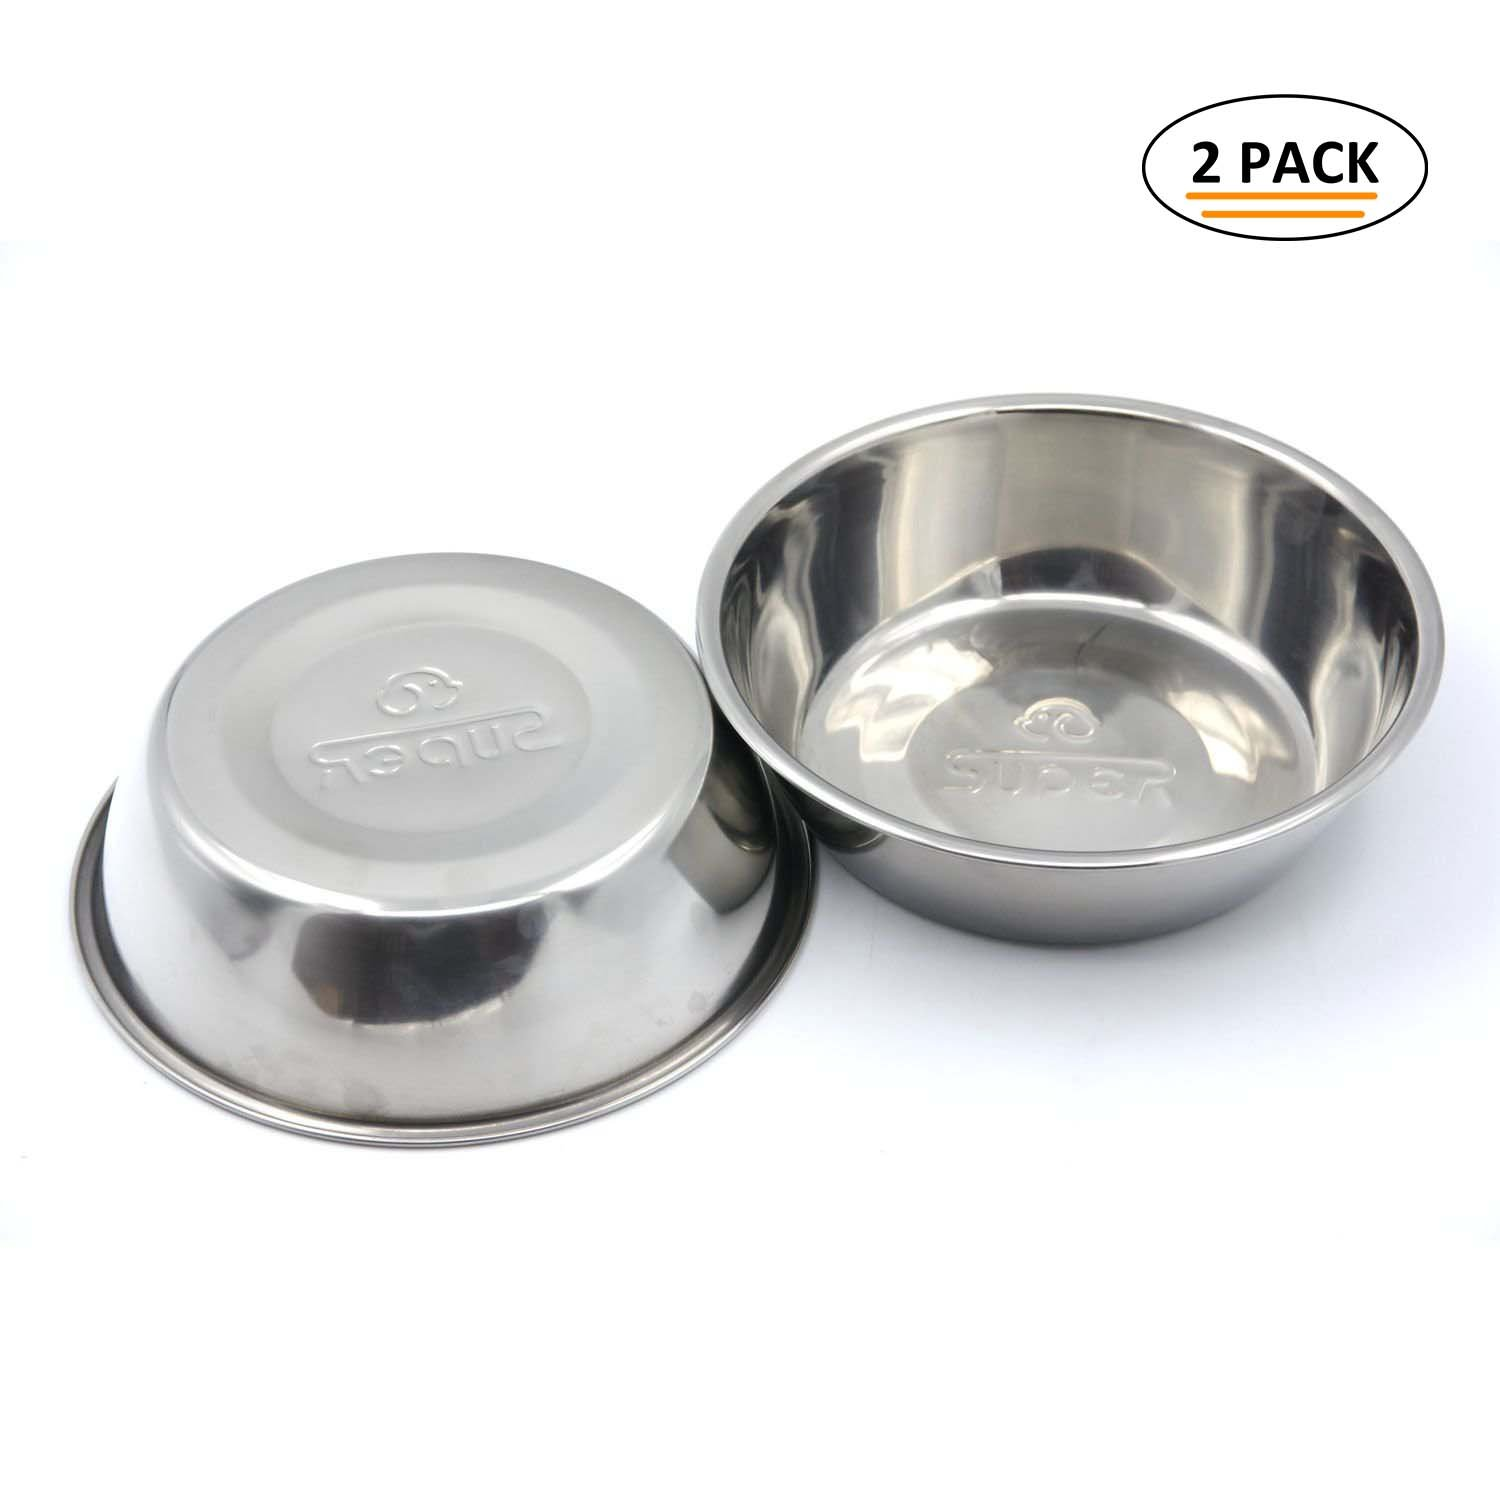 Super Design Stainless Steel Pet Bowl Package for Dogs and Cats, 1 Pack of 2, XL